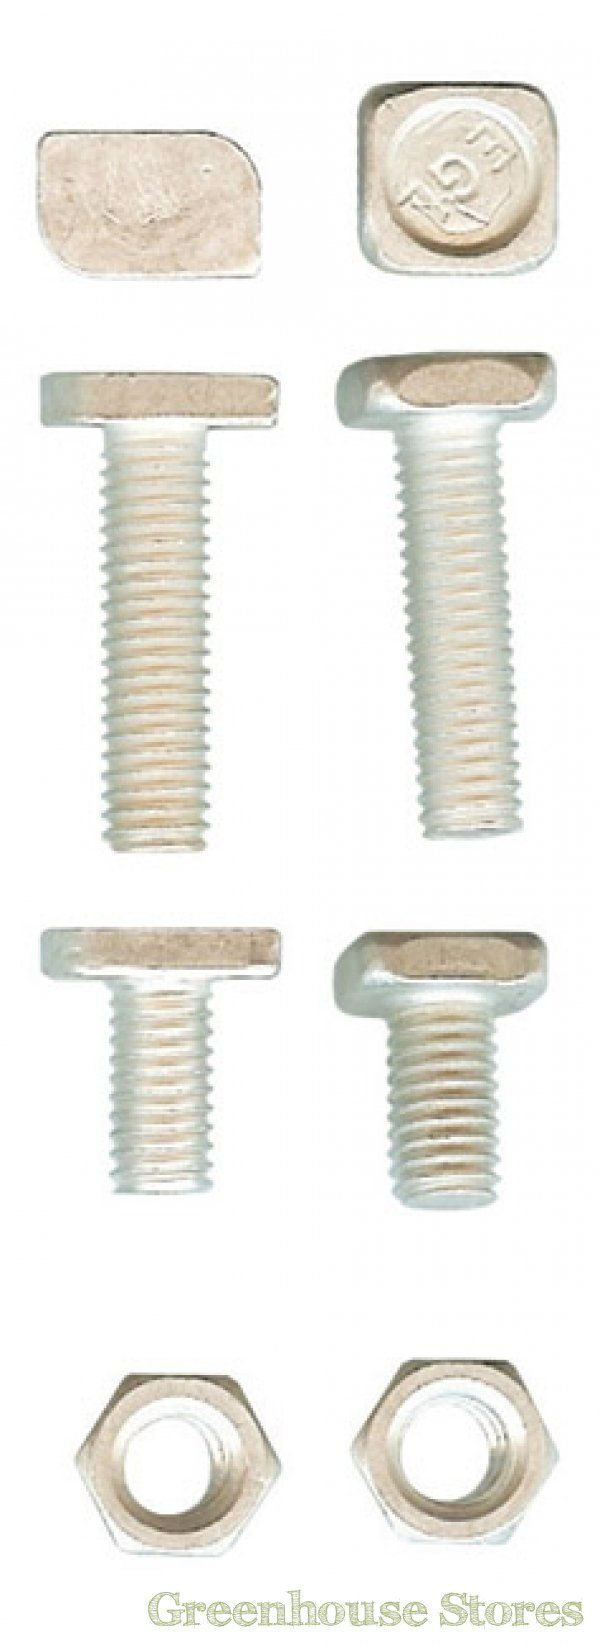 Elite Greenhouse Nuts And Bolts   http://www.greenhousestores.co.uk/Elite-Nuts-and-Bolts-Cropped-Head-11mm-Pack-of-50.htm